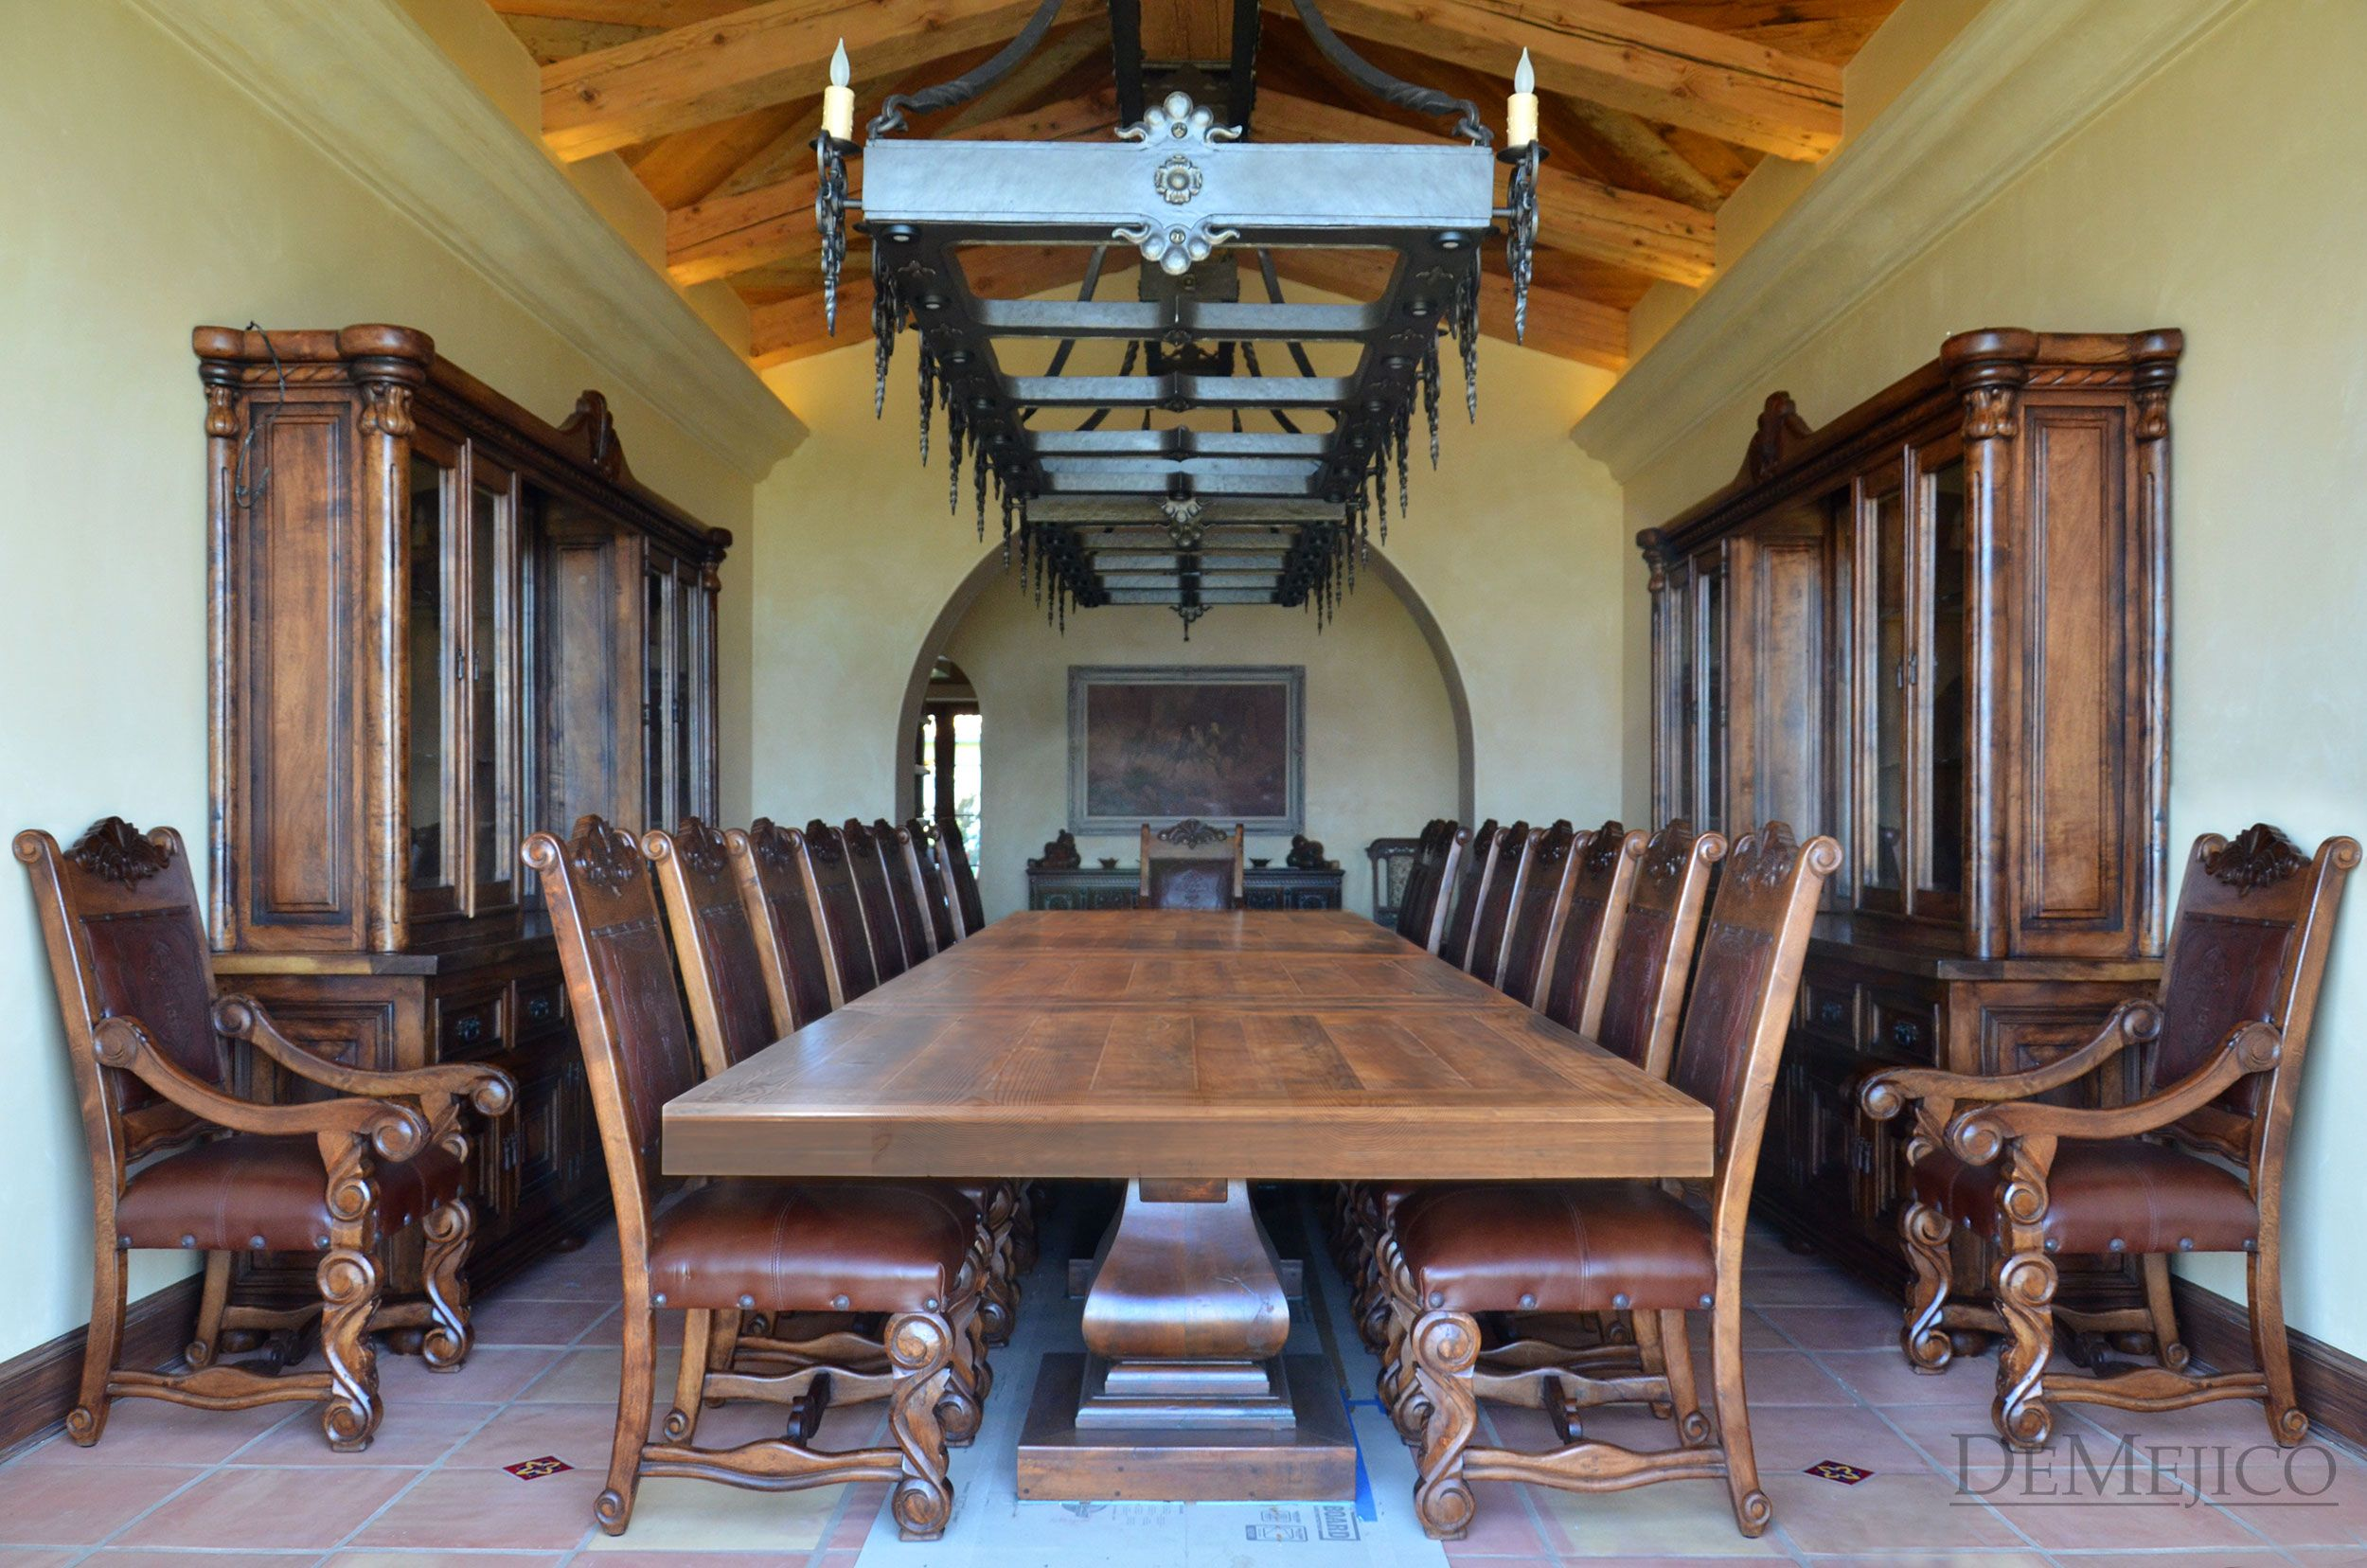 16' Dining Table Manufactured From Mesquite Wood  Custom Classy Spanish Dining Room Table Design Inspiration